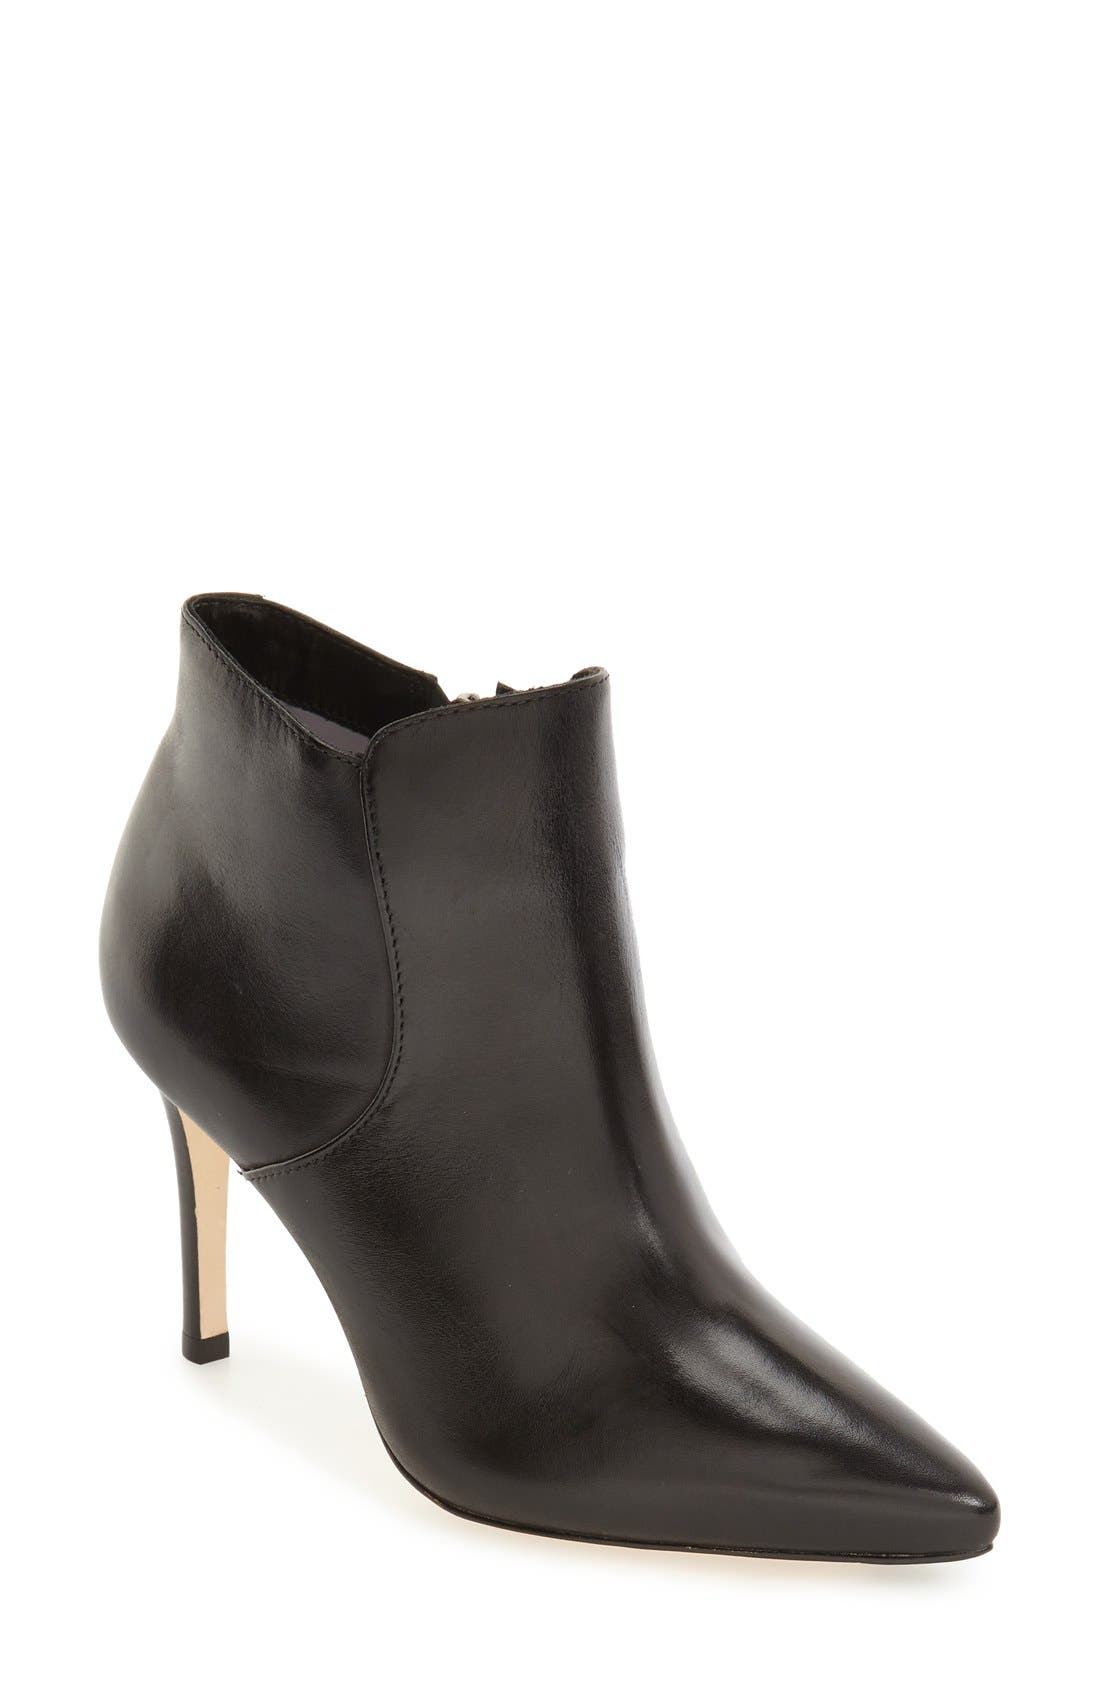 'Valerie' Pointy Toe Bootie,                             Main thumbnail 1, color,                             001